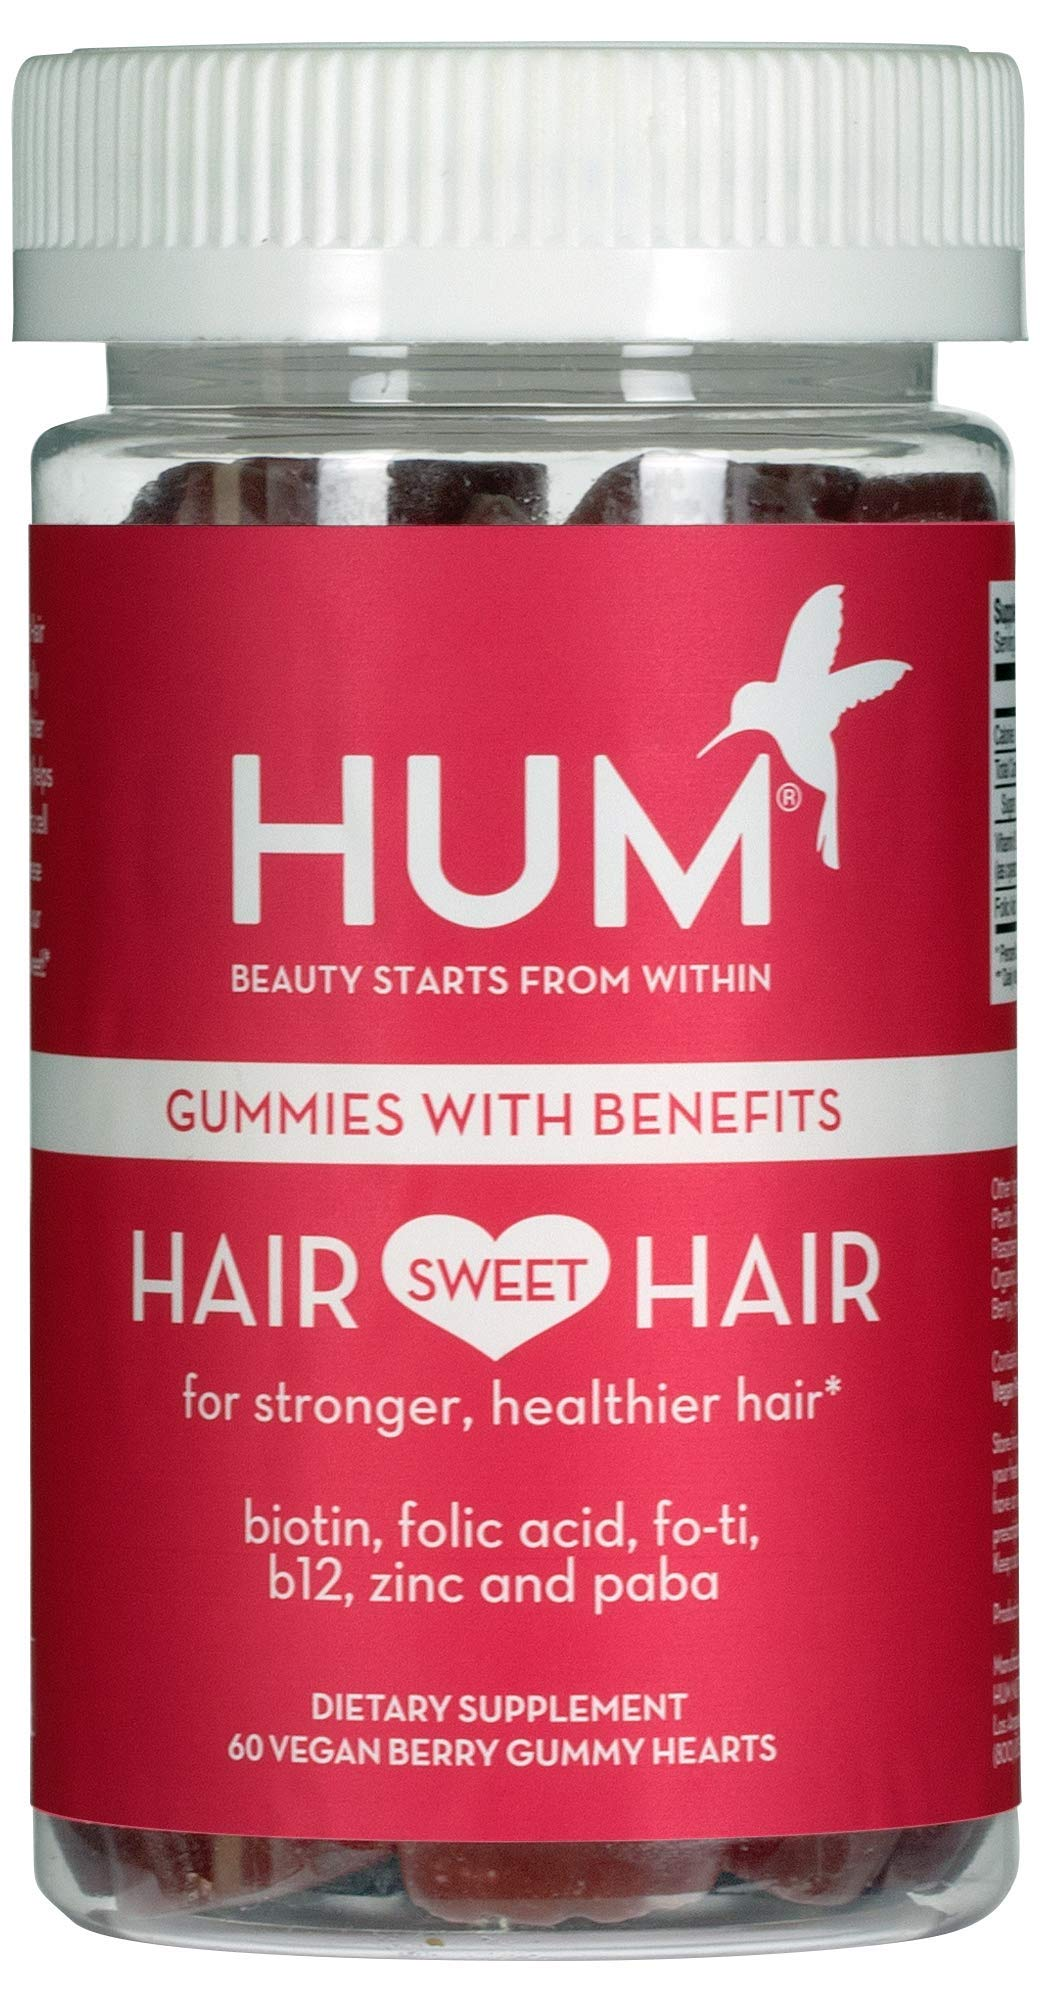 HUM Hair Sweet Hair - Vegan Hair Gummies with 5000mcg Biotin, B Vitamins, Fo-Ti & Zinc (60 Berry Flavored Gummies) by HUM